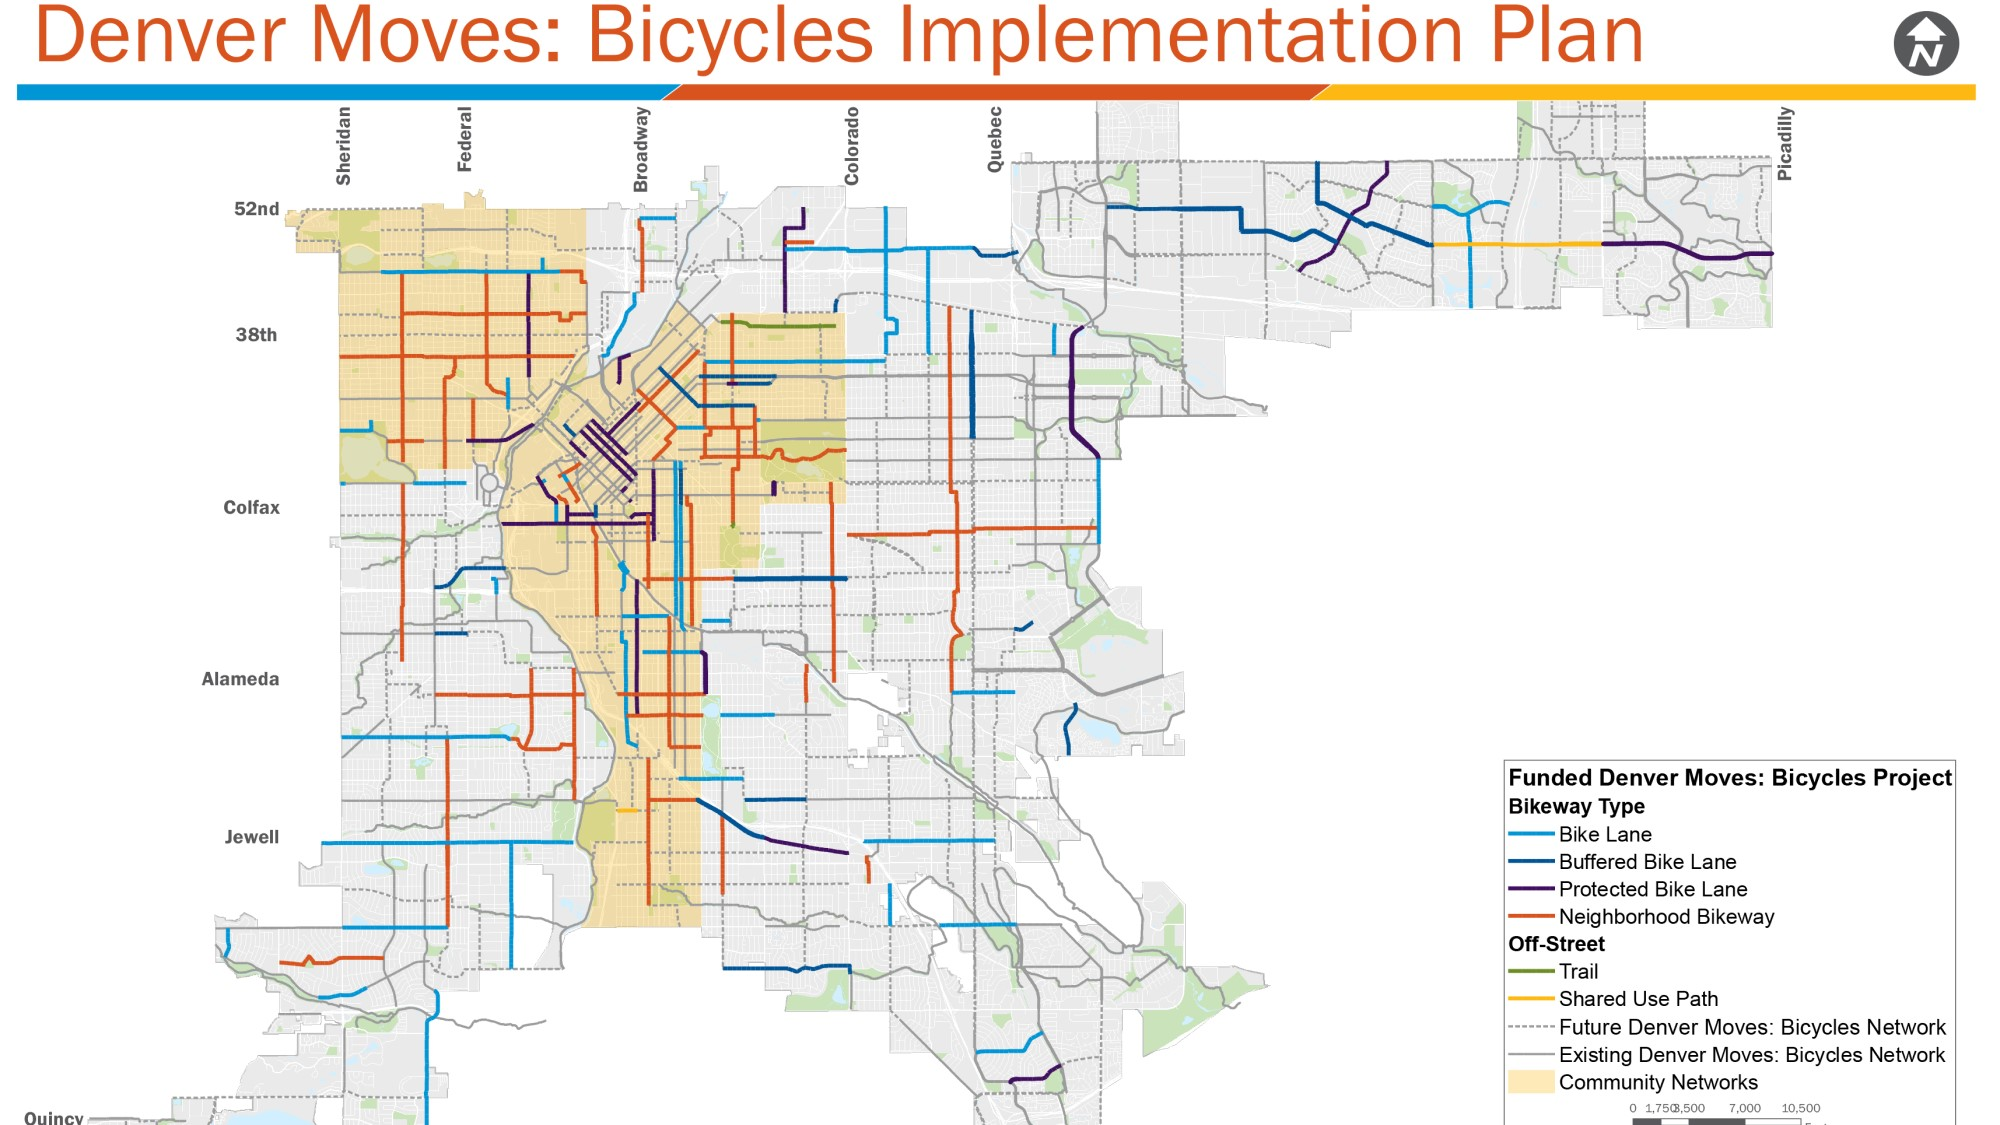 map of denver moves: bicycle implementation plan